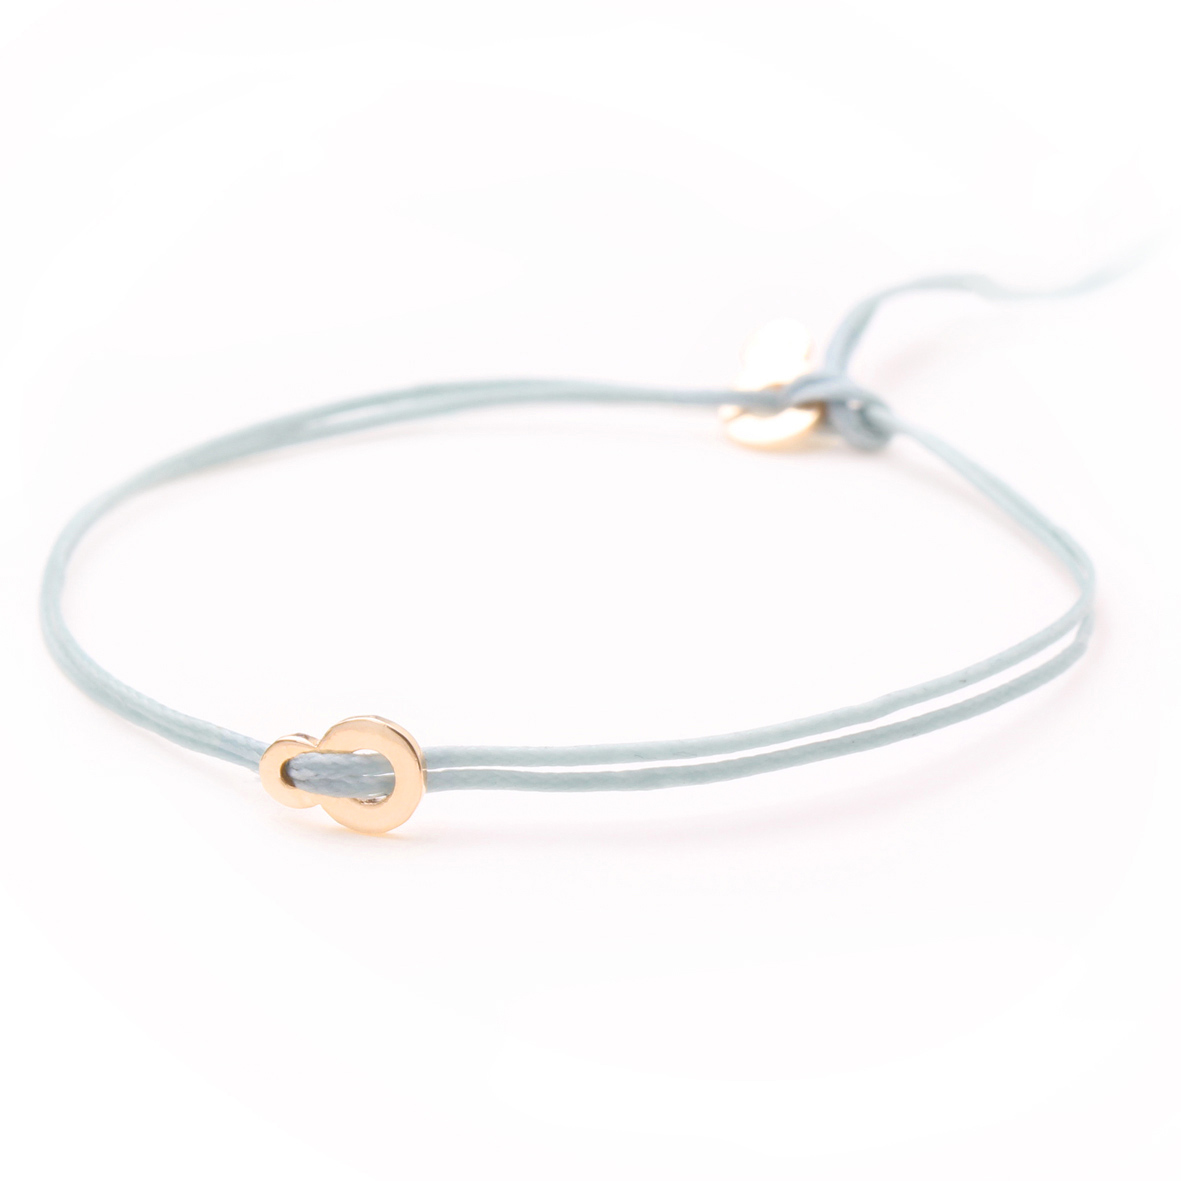 FriendshipCuff – Goud Verguld